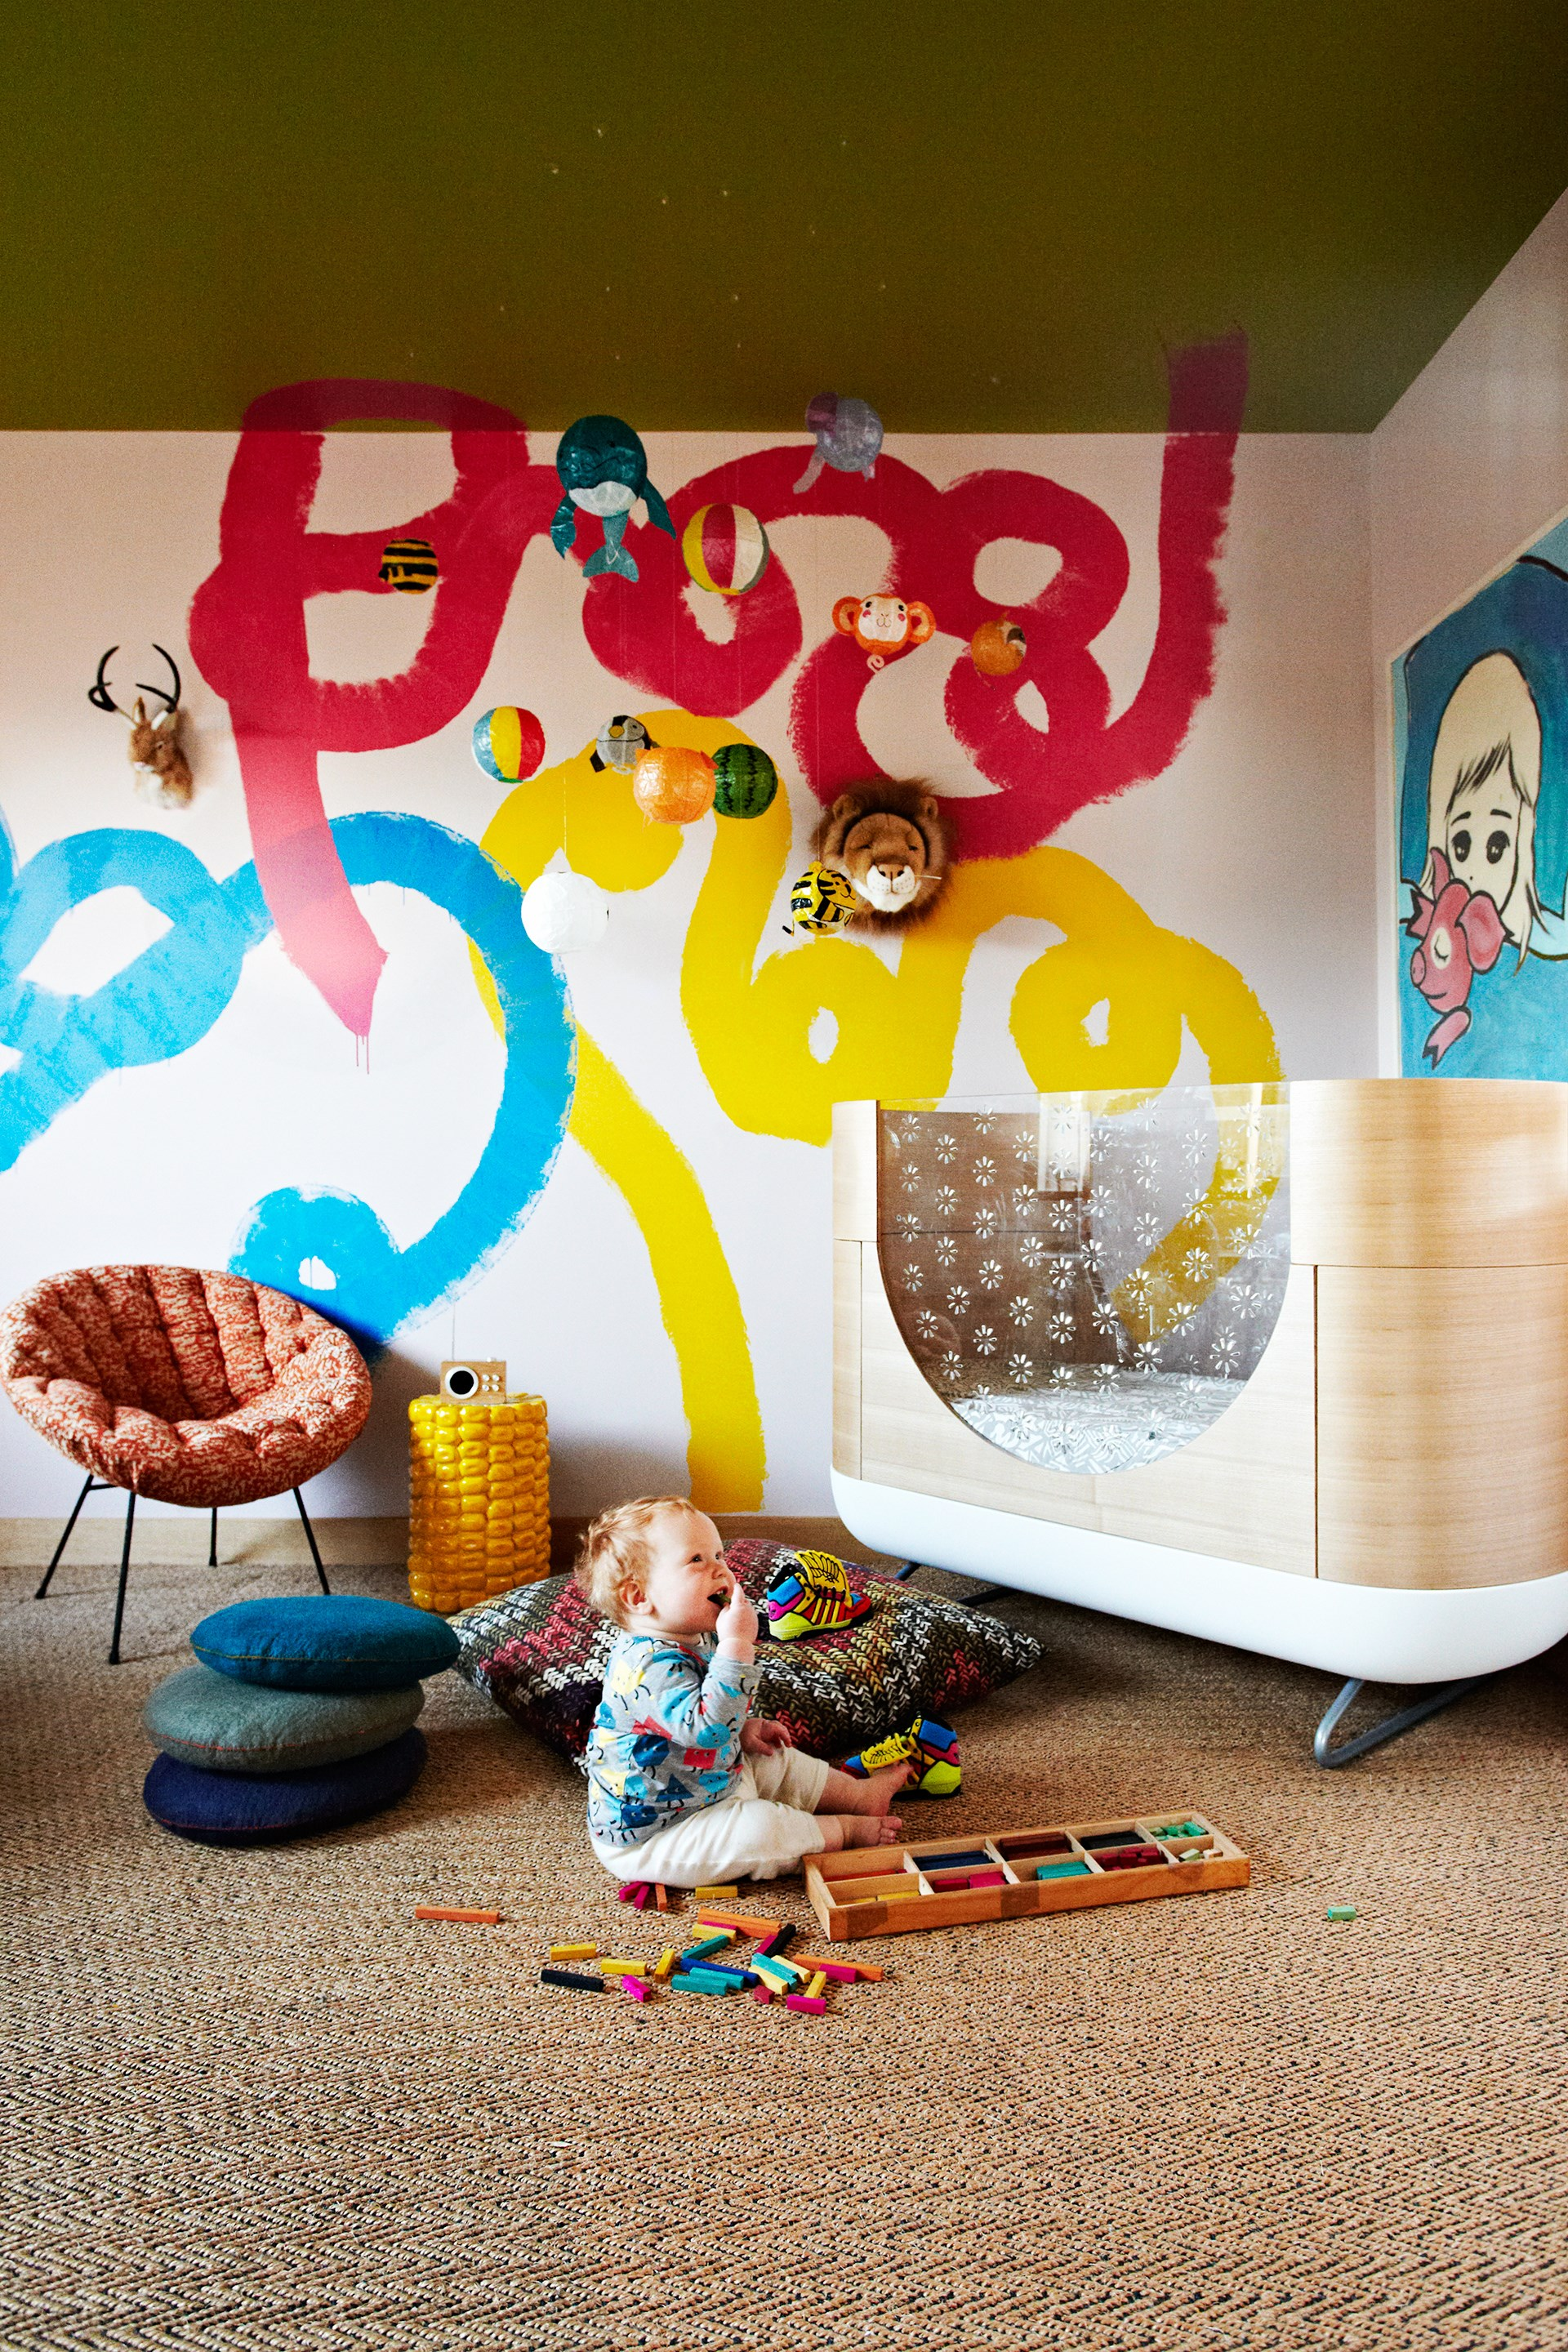 """In the [home of Kip & Co co-owner Kate Heppell](http://www.homestolove.com.au/the-home-of-kip-and-co-co-owner-kate-heppell-3596